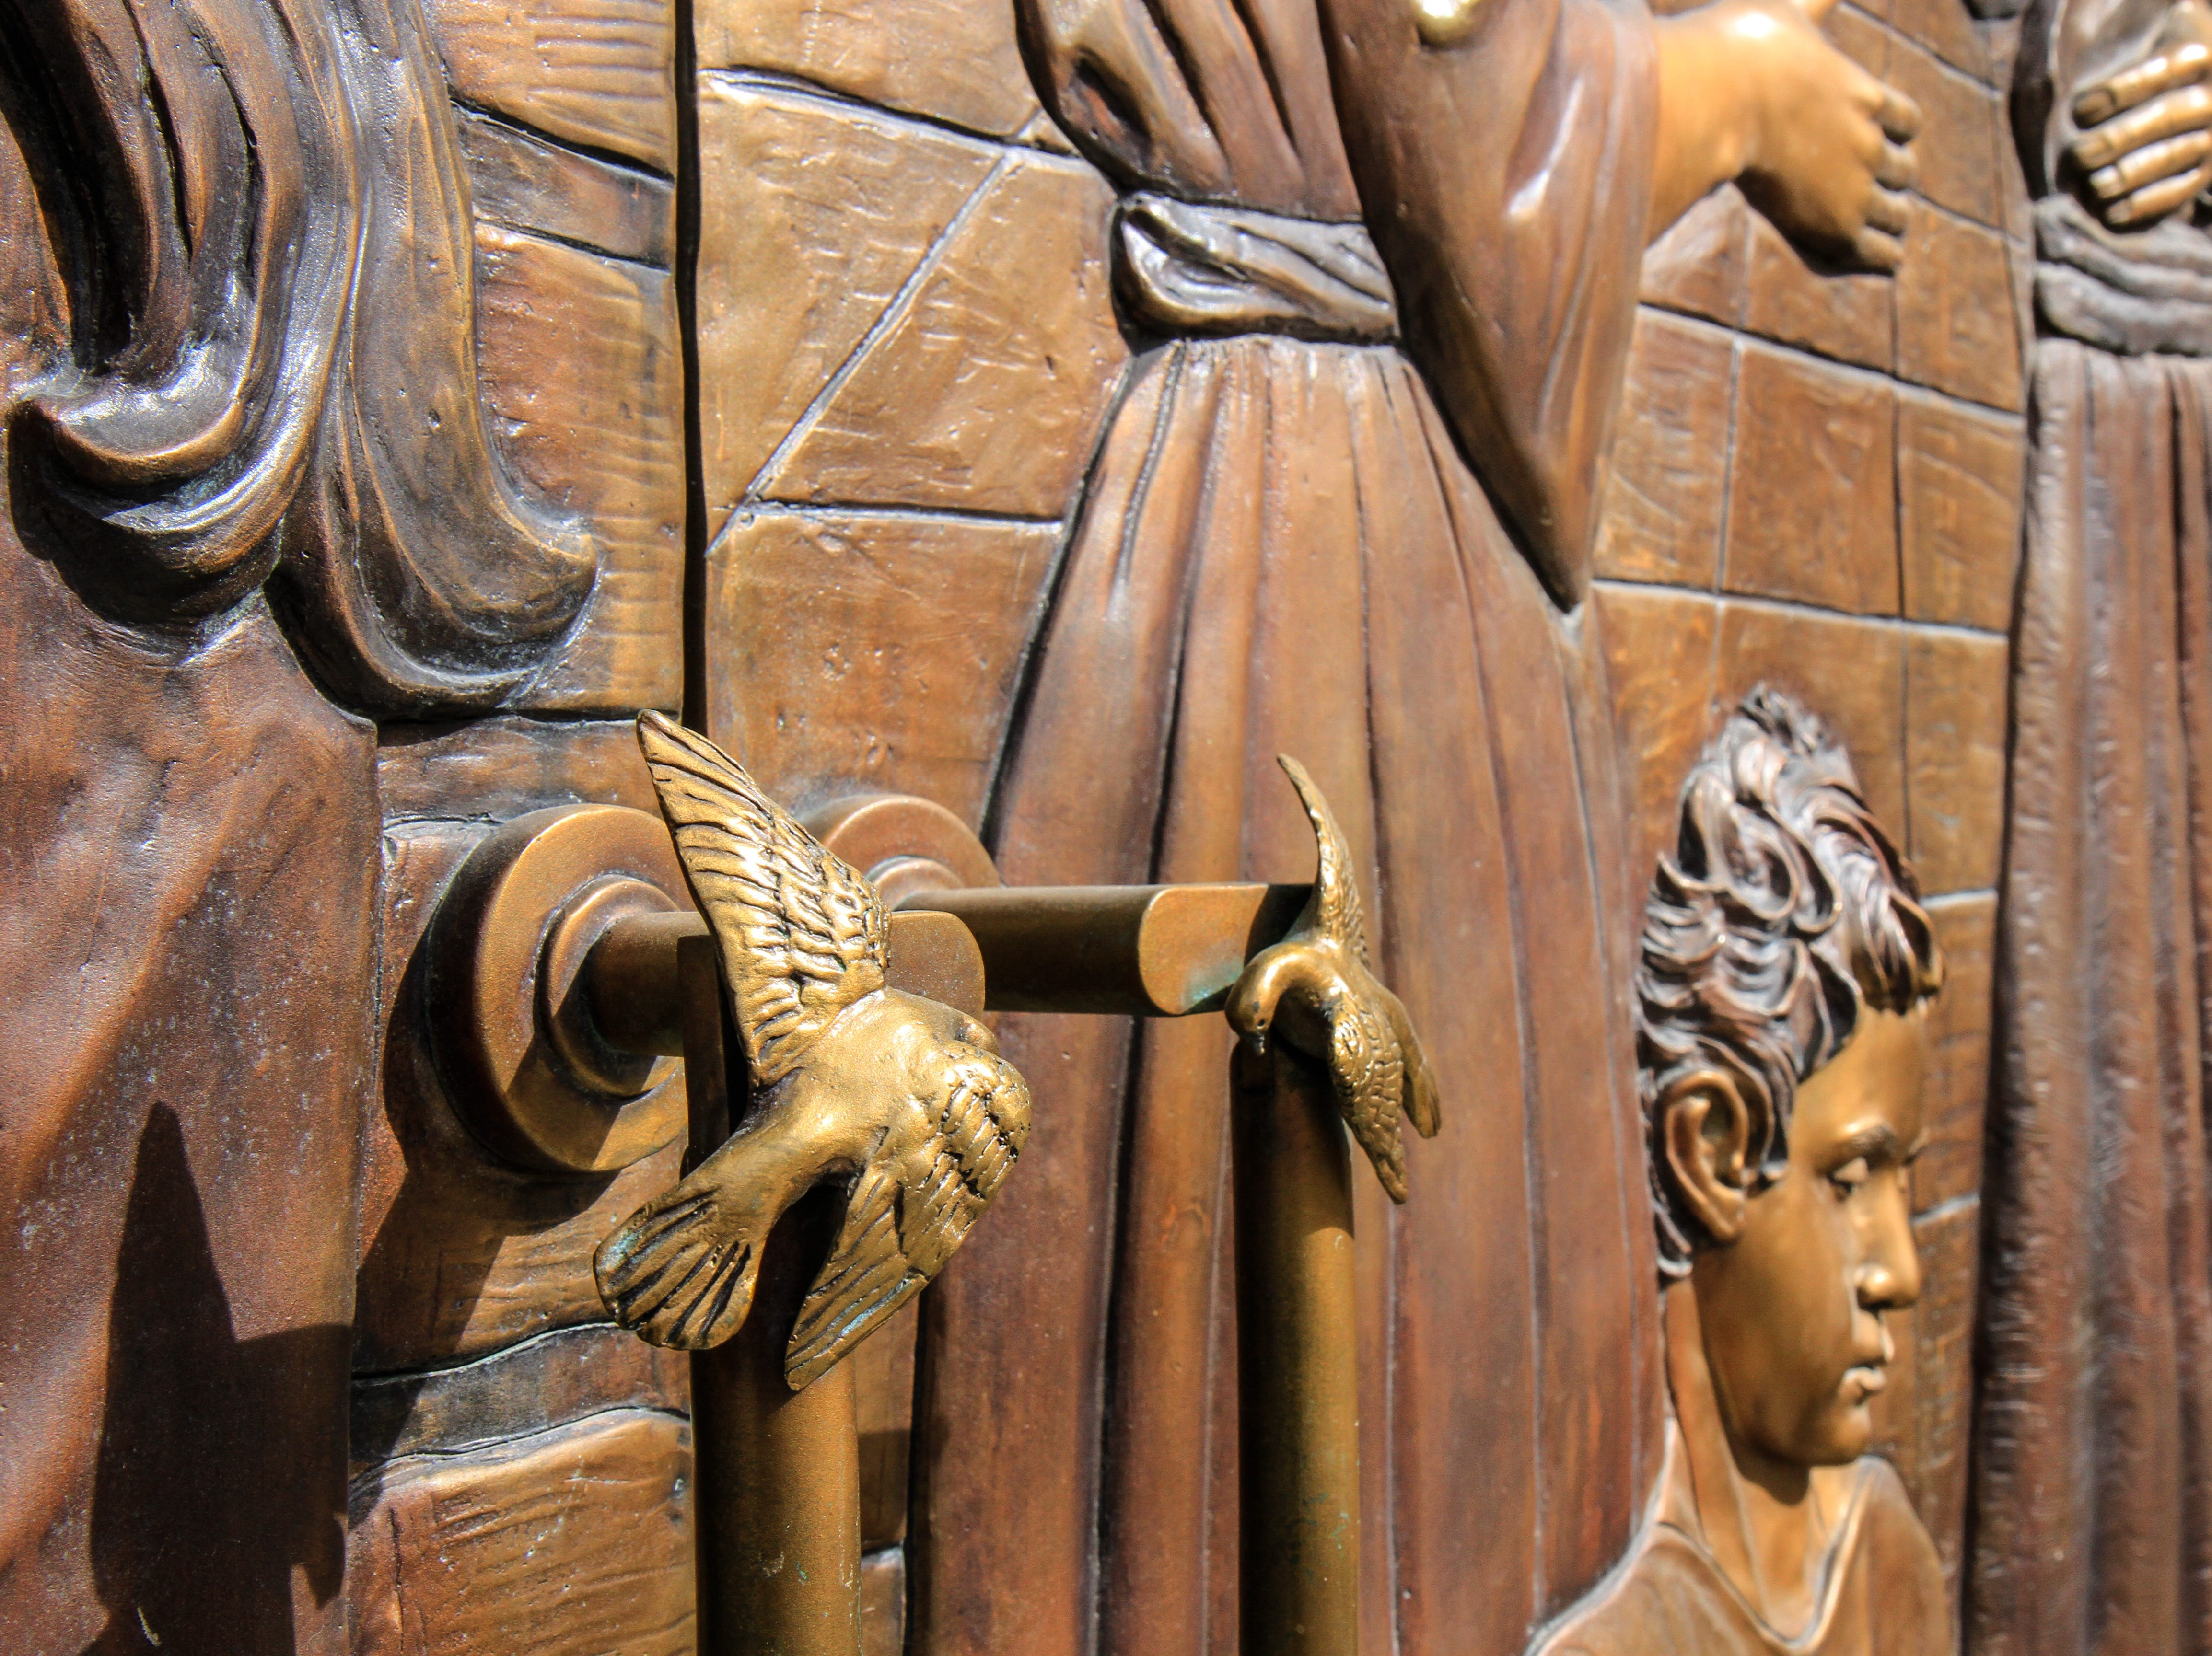 Doves are on the handles of ceremonial doors at St. Ann's Cathedral in Great Falls.